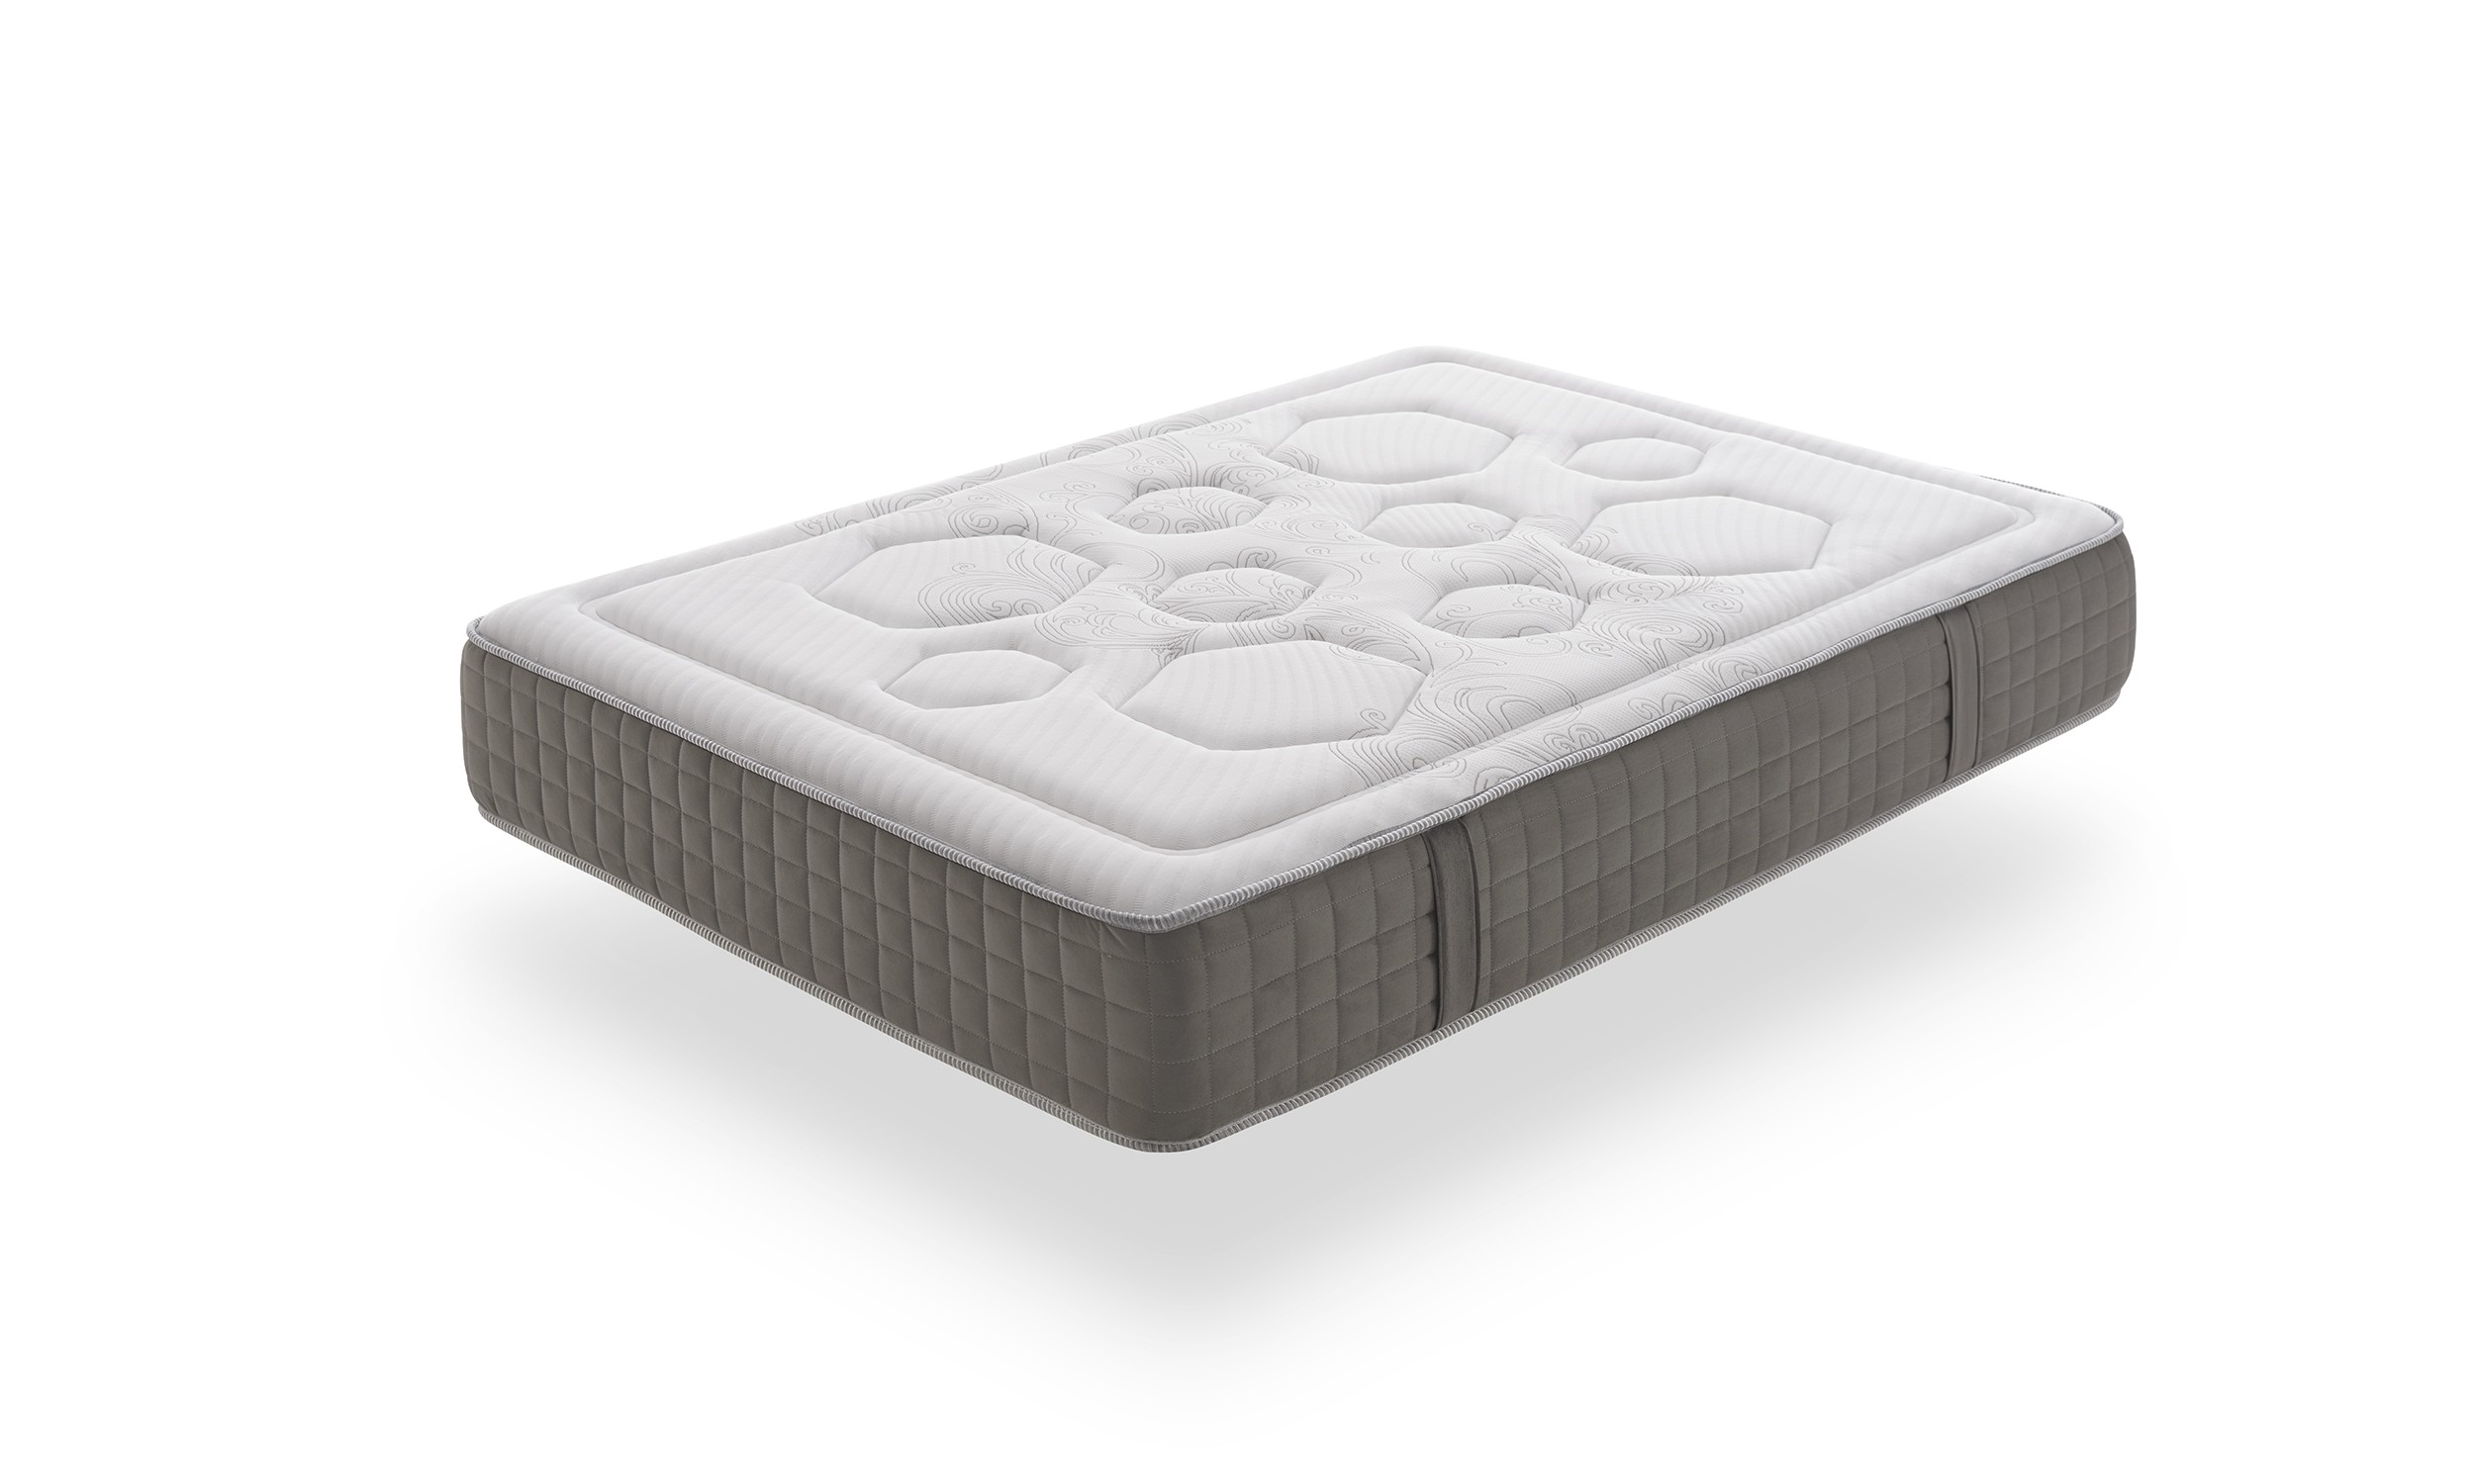 MATTRESS HEXAFLEX GEL 30 CM